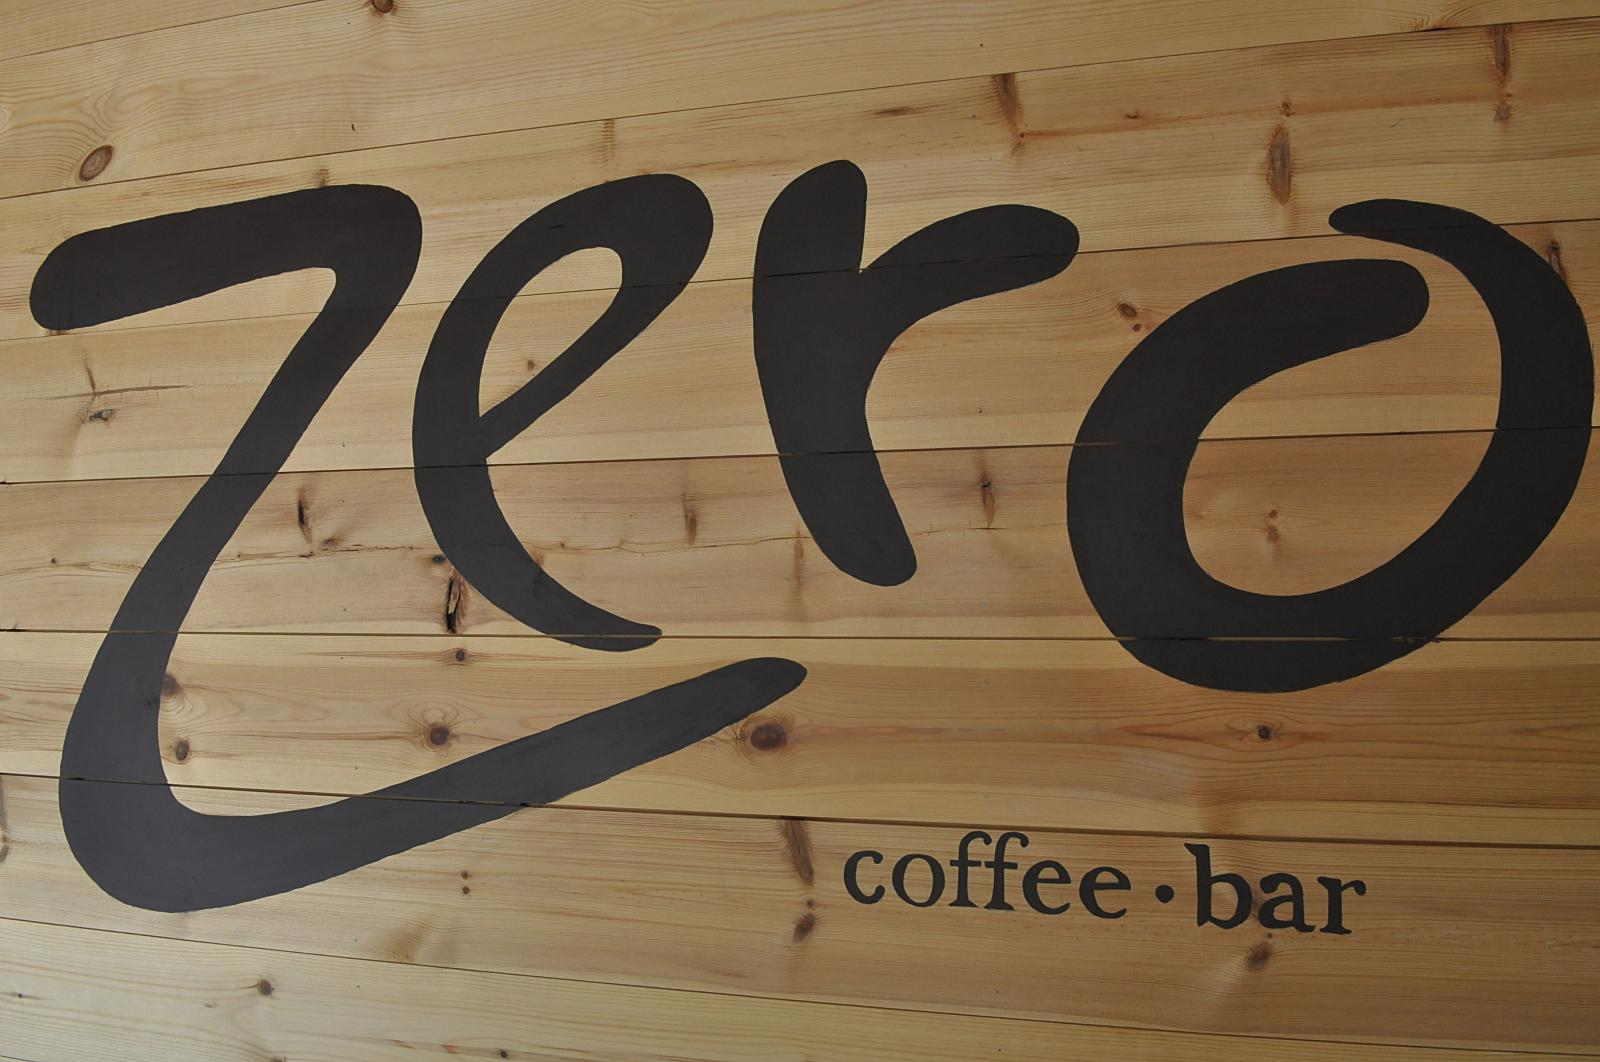 Zero Cafe-Bar, Kos island, Kos Greece